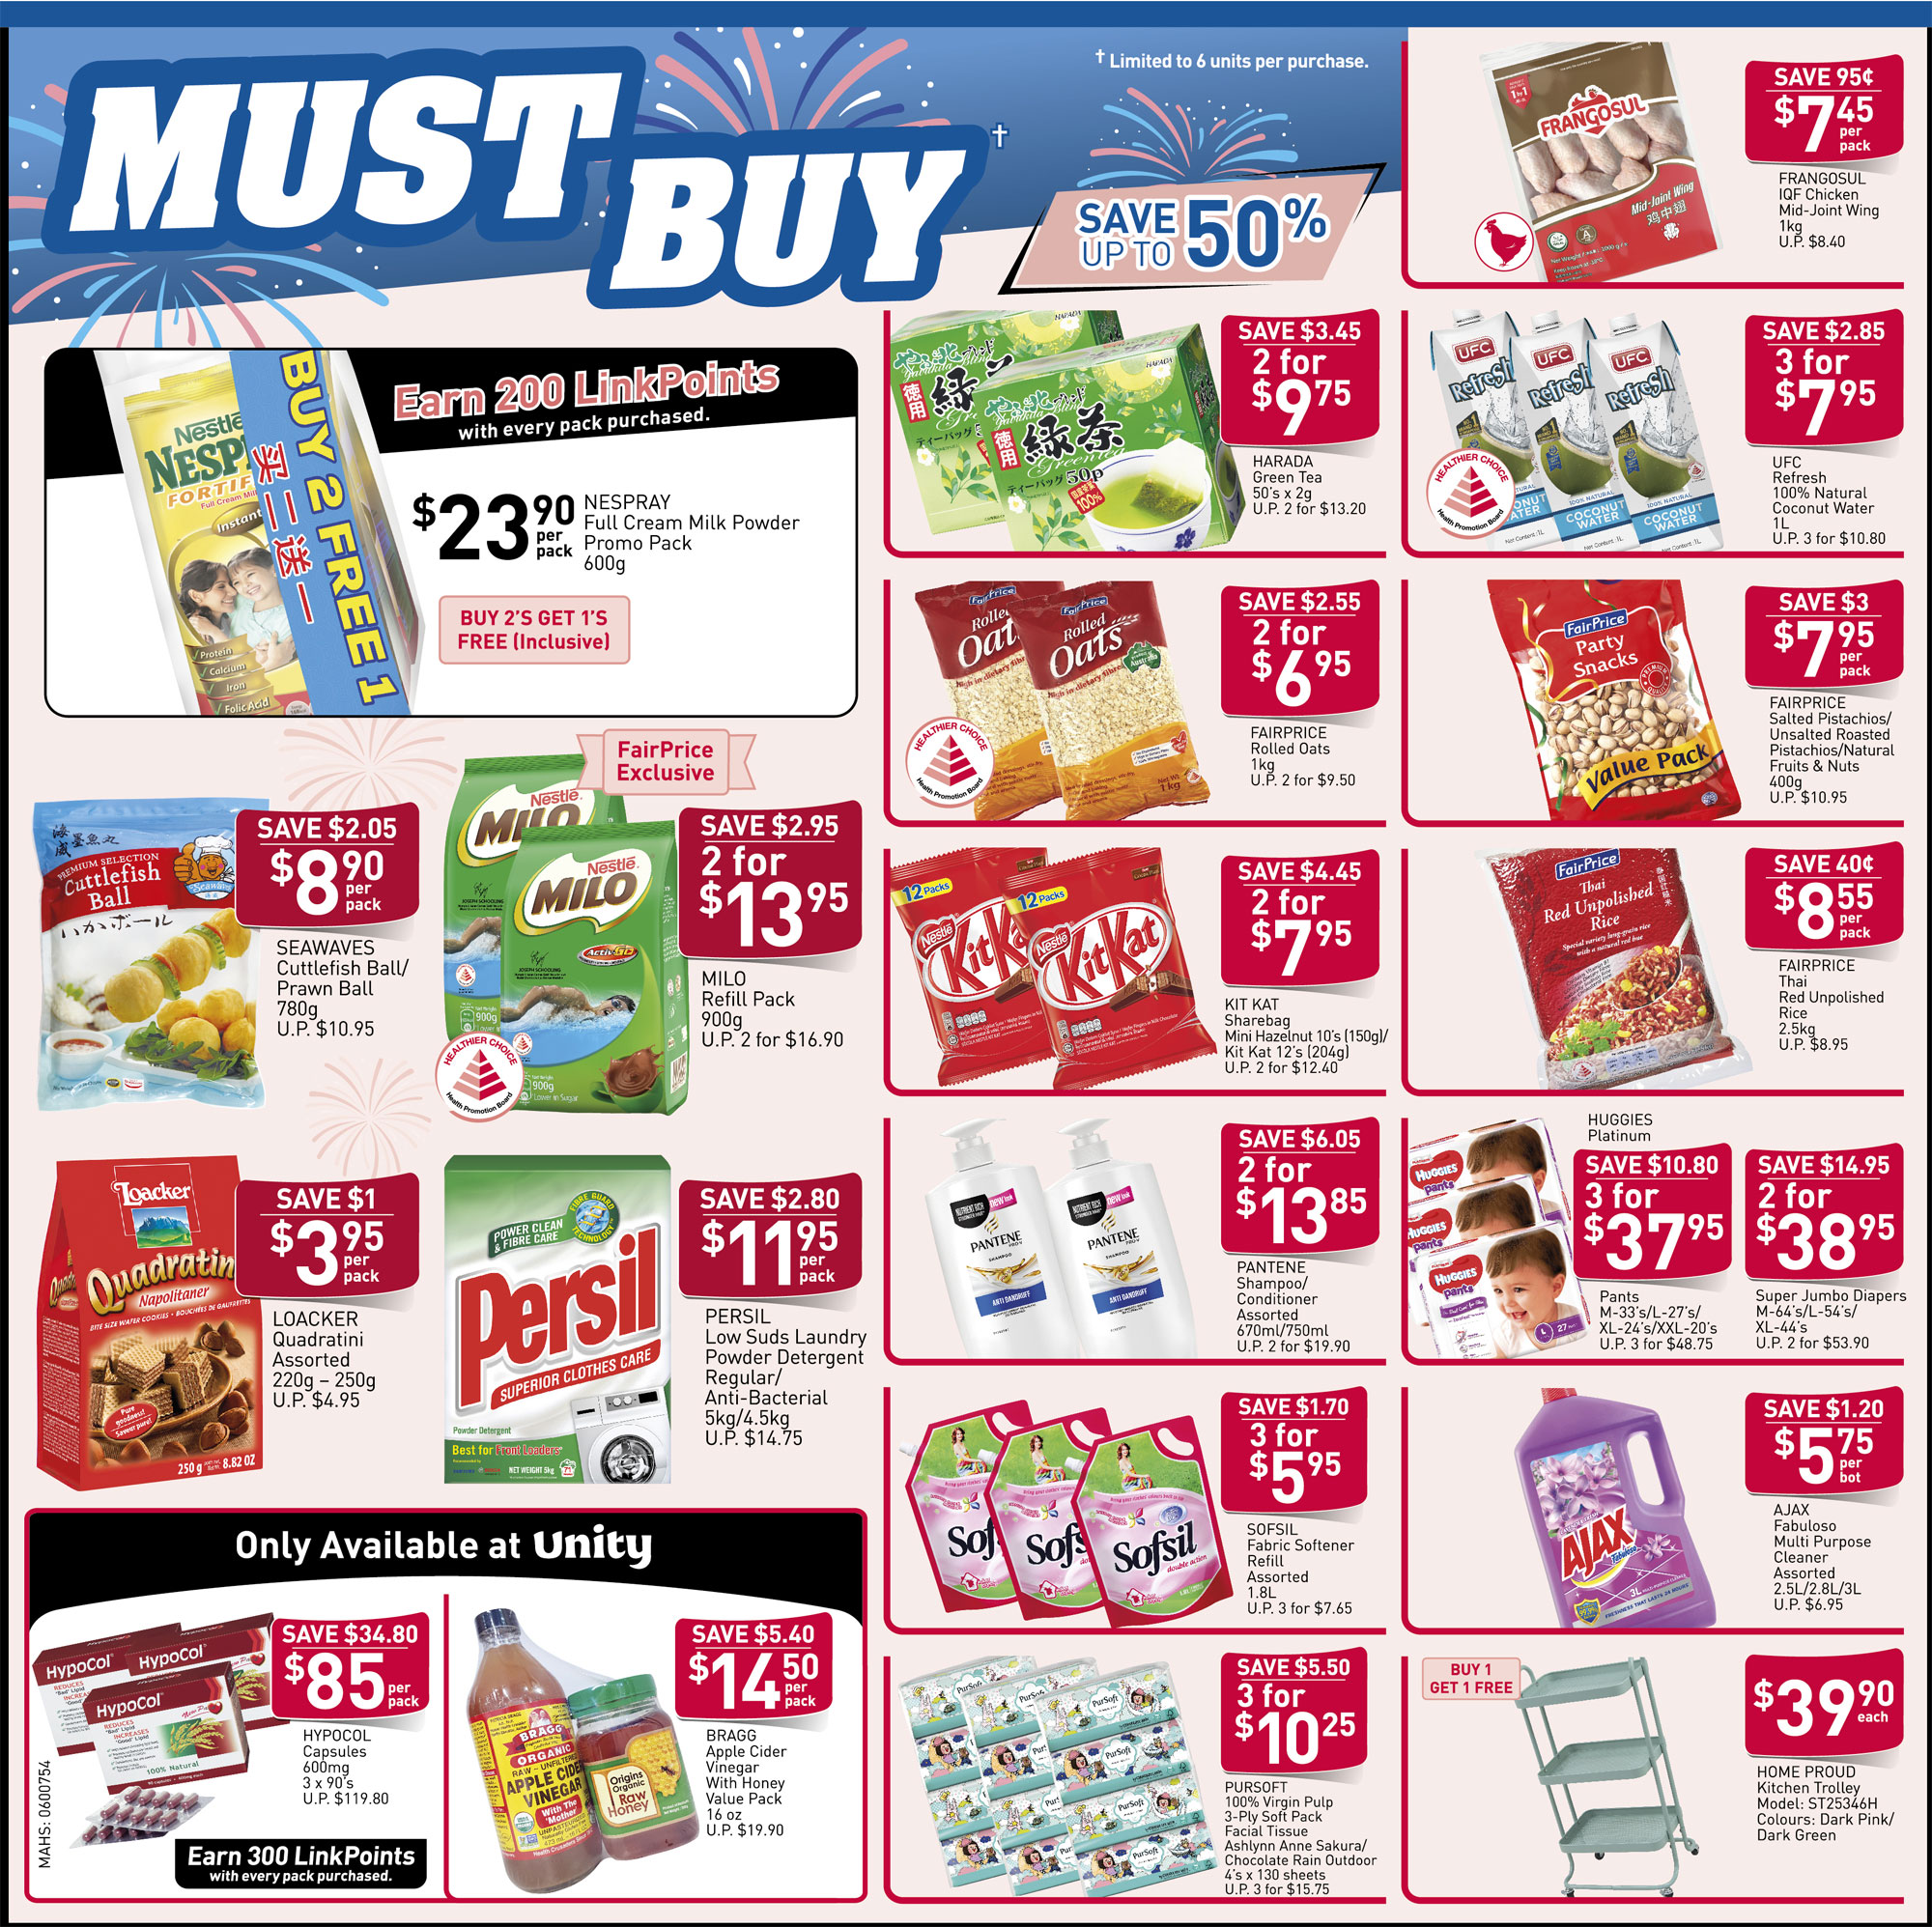 NTUC FairPrice Singapore Your Weekly Saver Promotion 22-28 Aug 2019 | Why Not Deals & Promotions